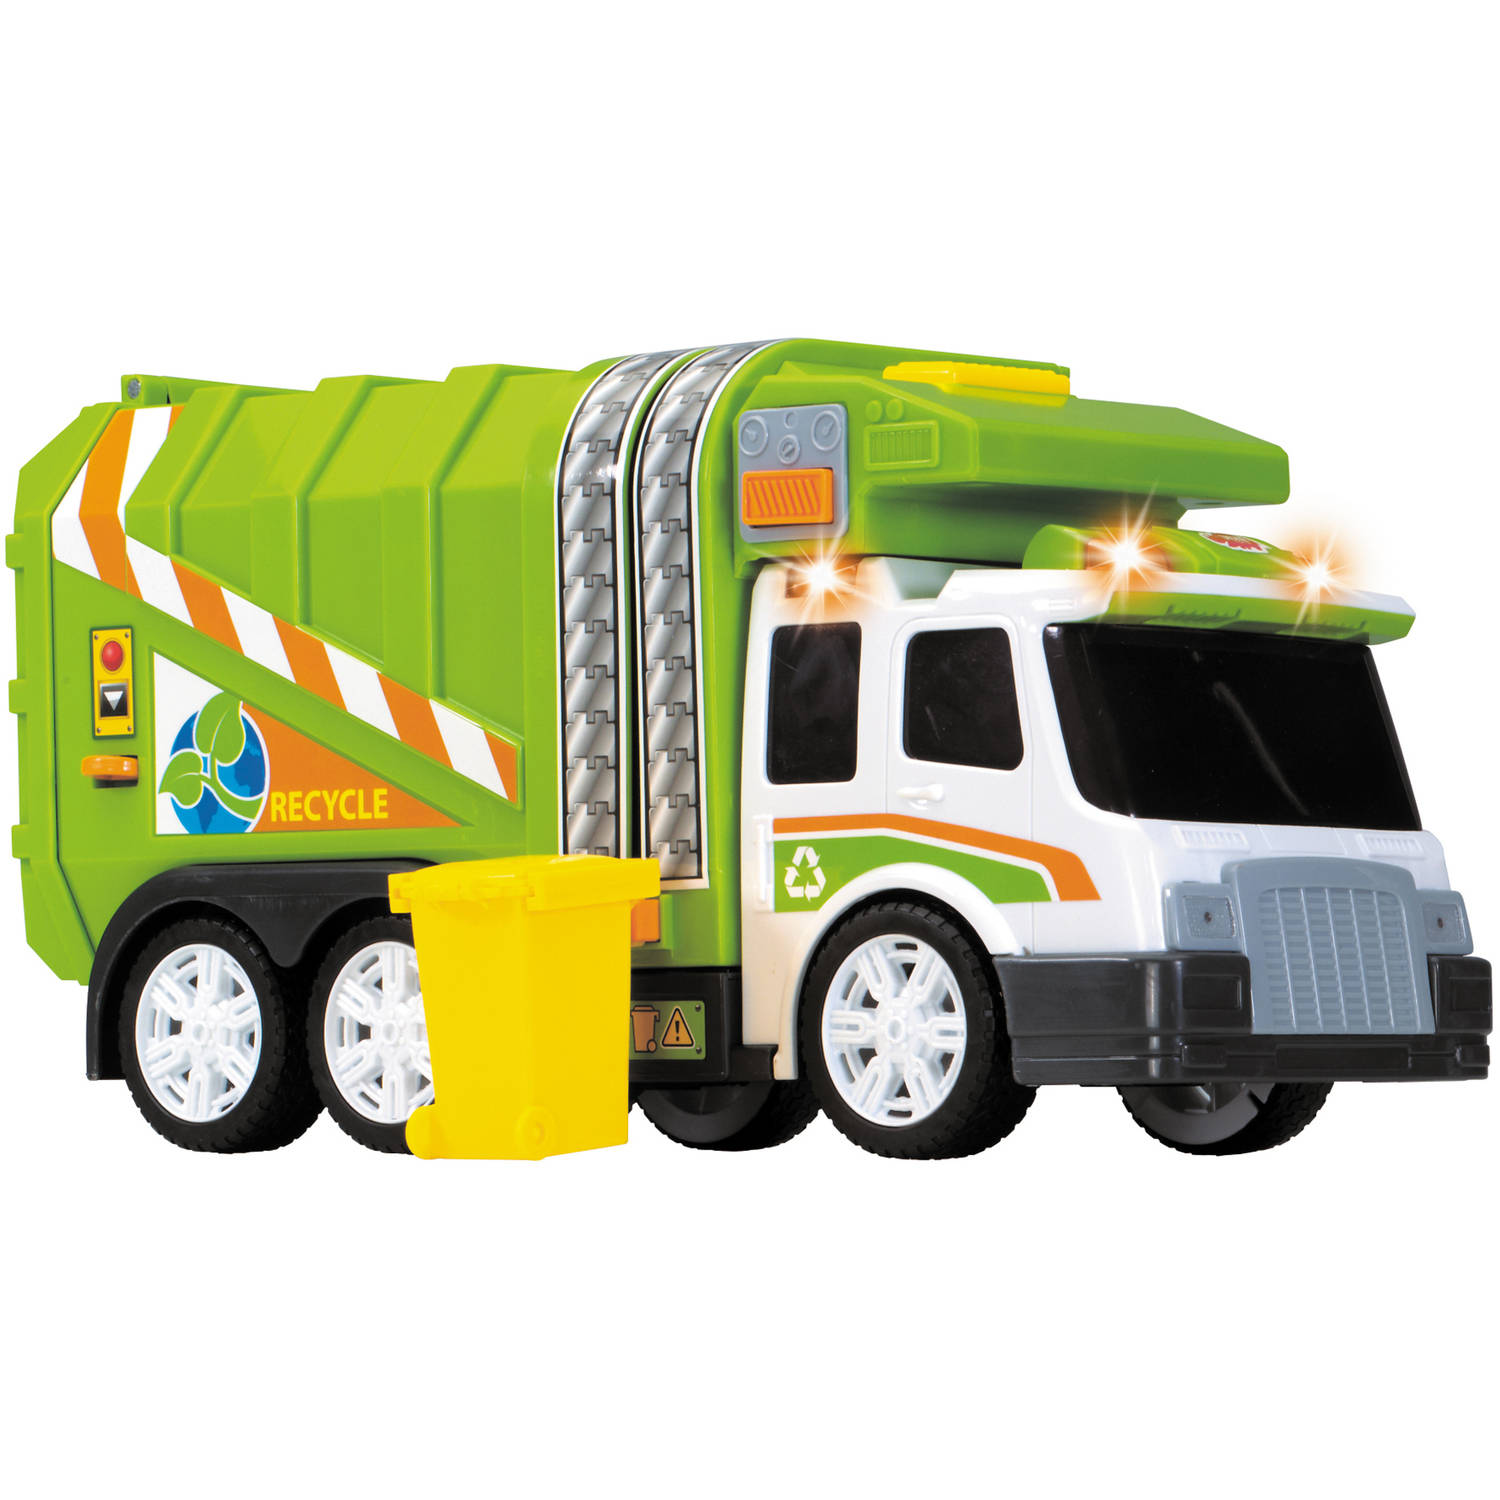 Dickie Toys Large Action Garbage Truck by Dickie Toys